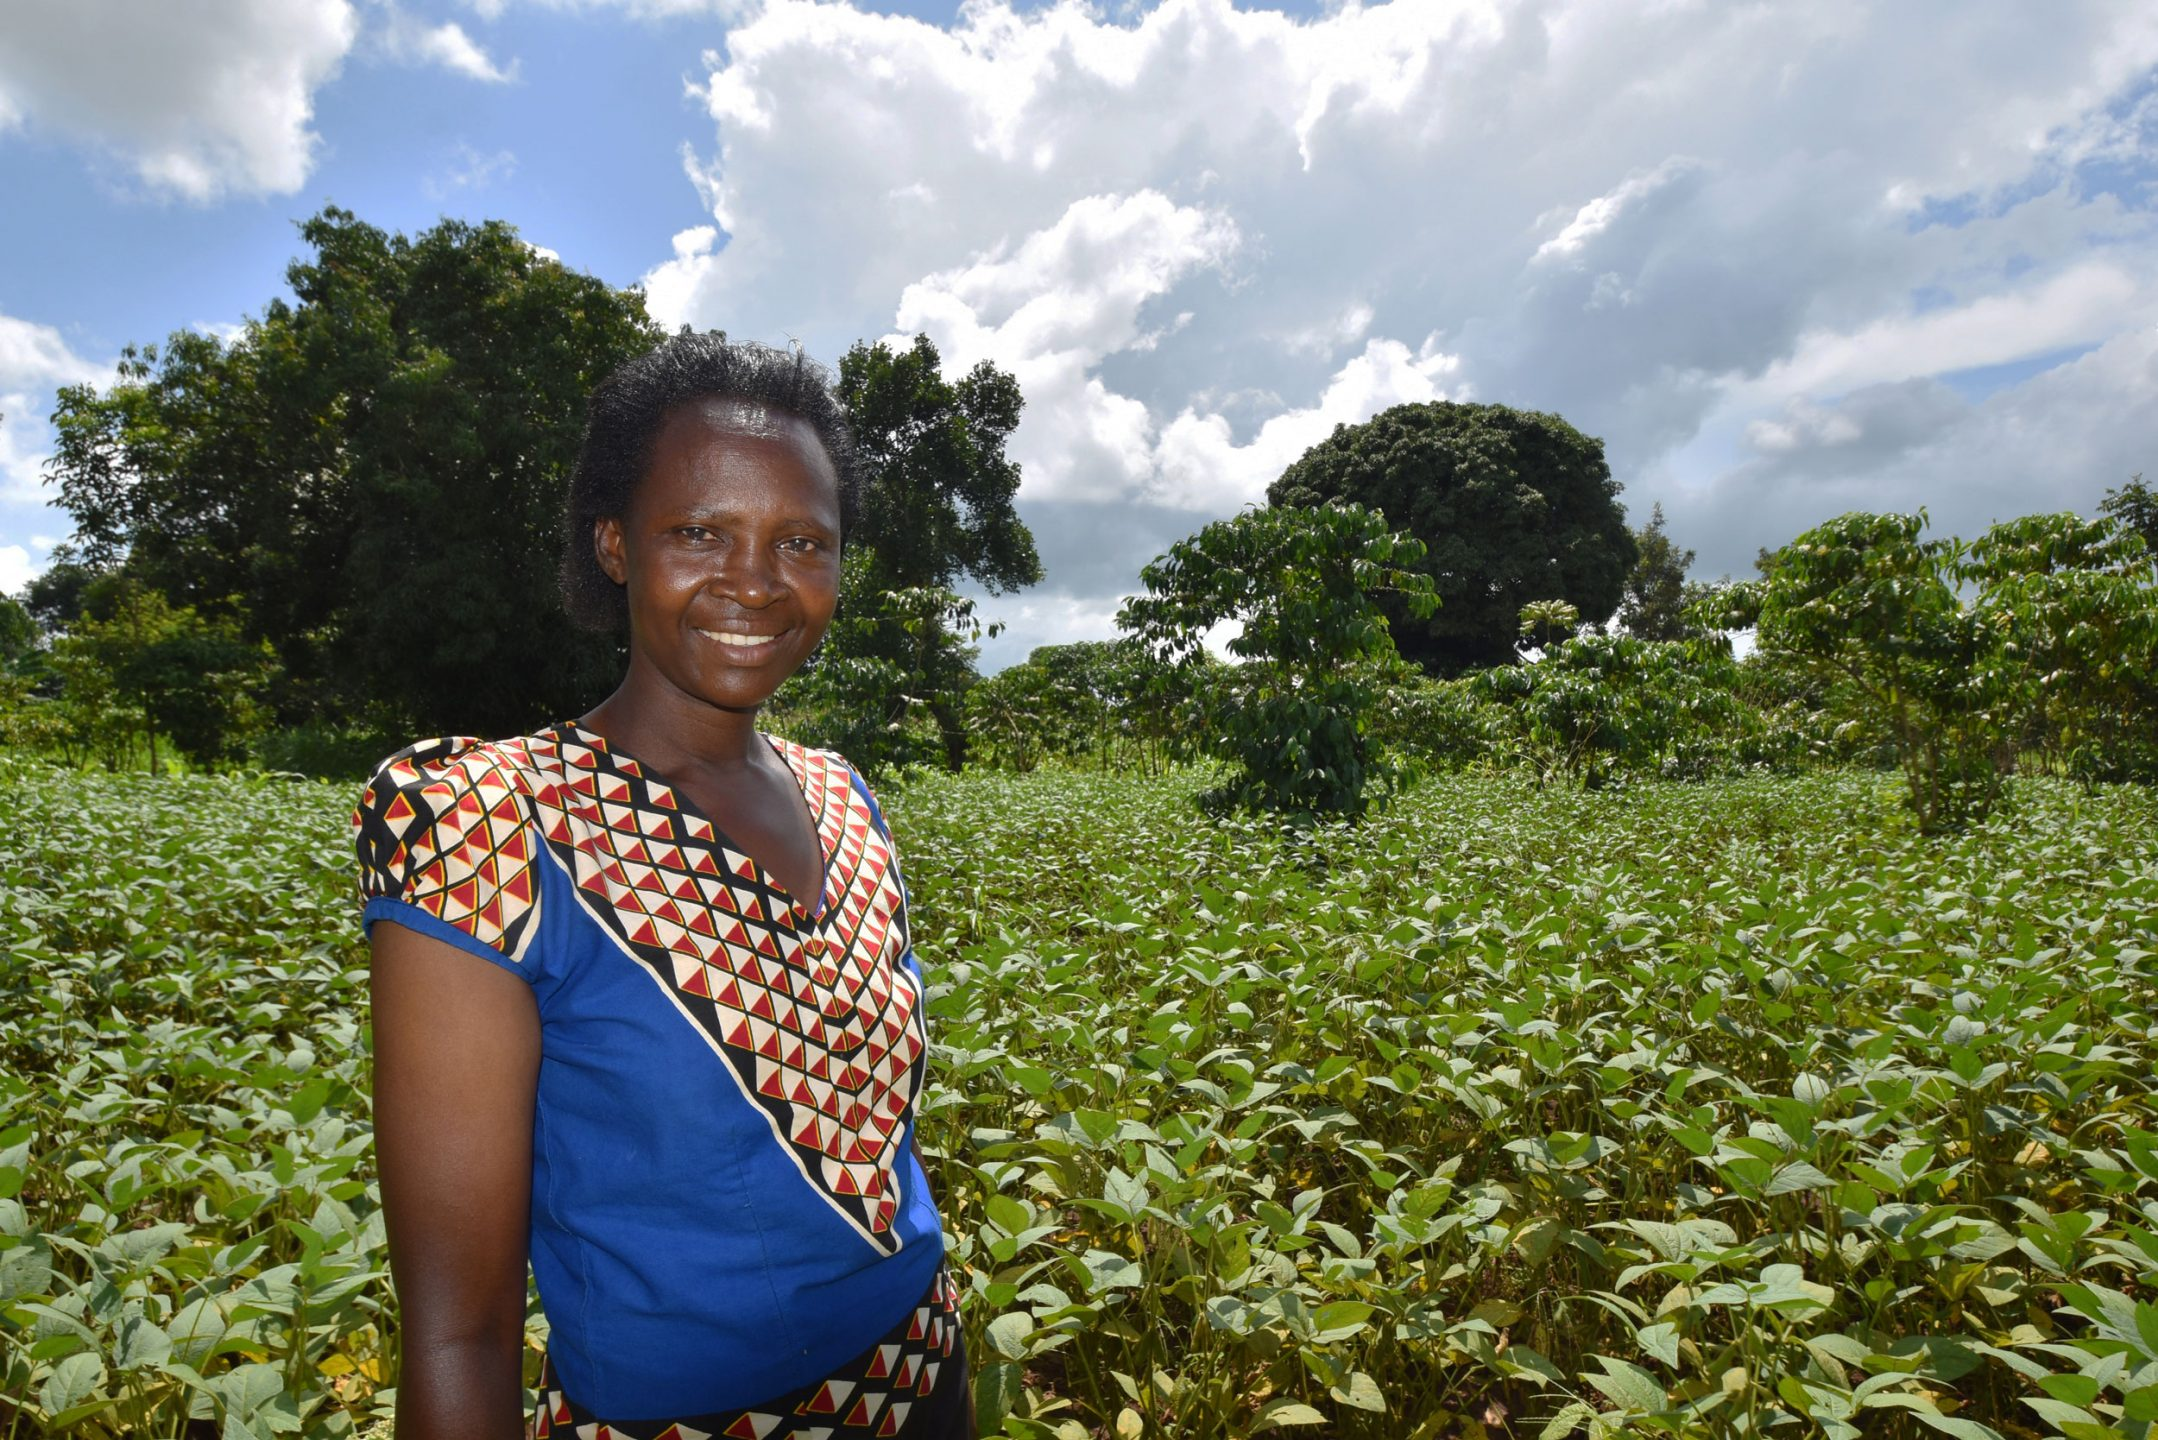 A woman stands in a field and smiles for a photo.